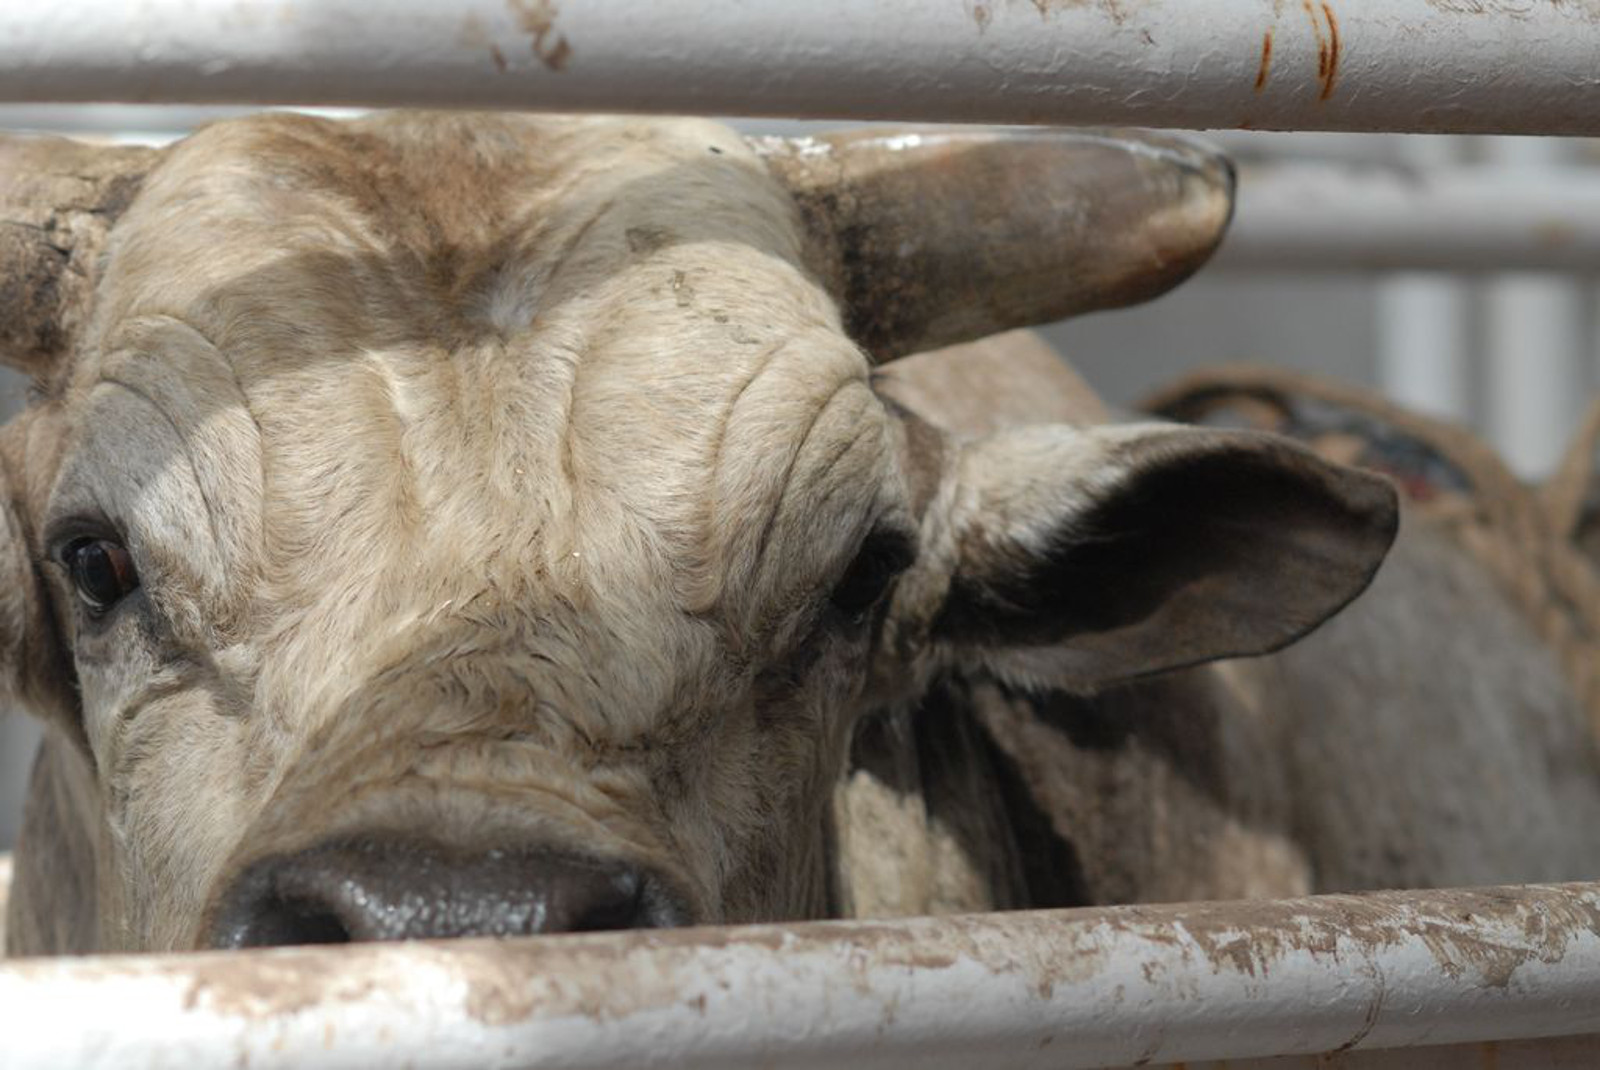 5 Reasons Why We Shouldn't Slaughter Animals for Food